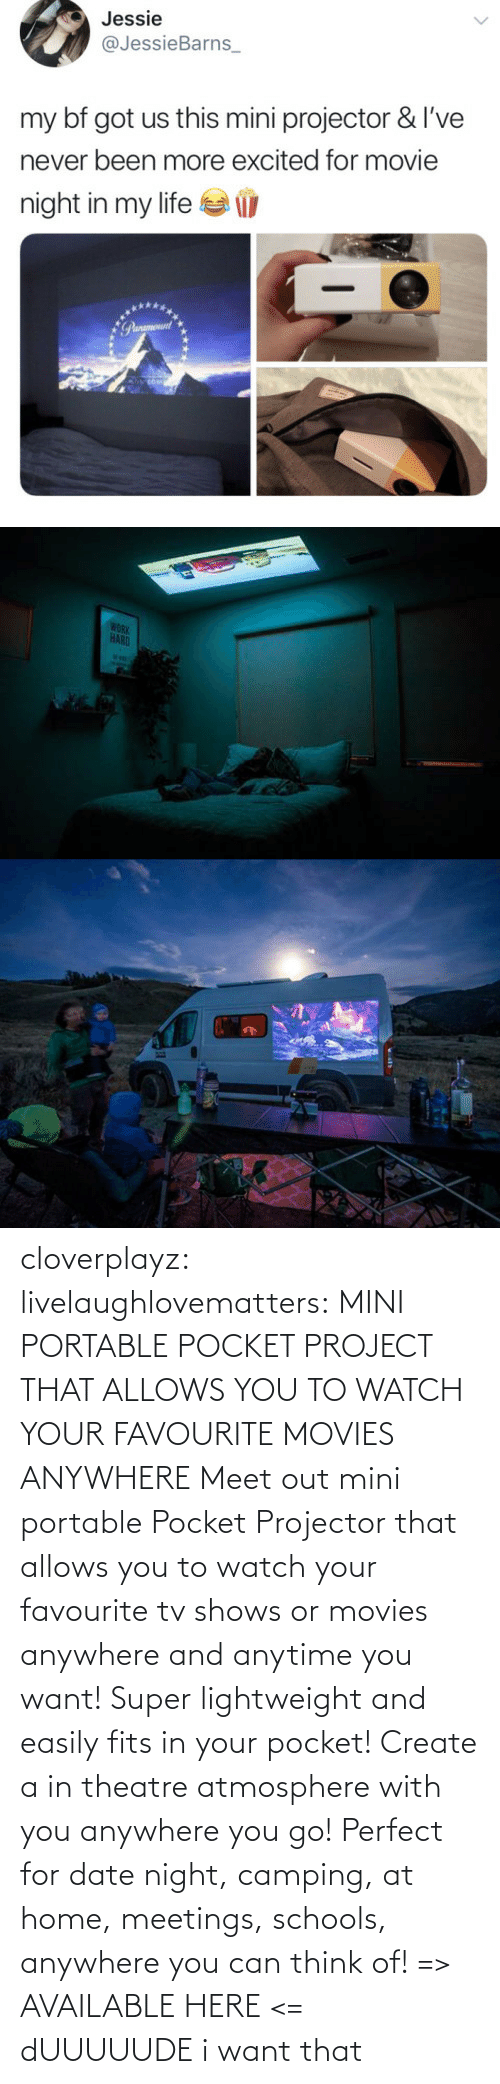 with you: cloverplayz: livelaughlovematters:  MINI PORTABLE POCKET PROJECT THAT ALLOWS YOU TO WATCH YOUR FAVOURITE MOVIES ANYWHERE Meet out mini portable Pocket Projector that allows you to watch your favourite tv shows or movies anywhere and anytime you want! Super lightweight and easily fits in your pocket! Create a in theatre atmosphere with you anywhere you go! Perfect for date night, camping, at home, meetings, schools, anywhere you can think of! => AVAILABLE HERE <=  dUUUUUDE i want that